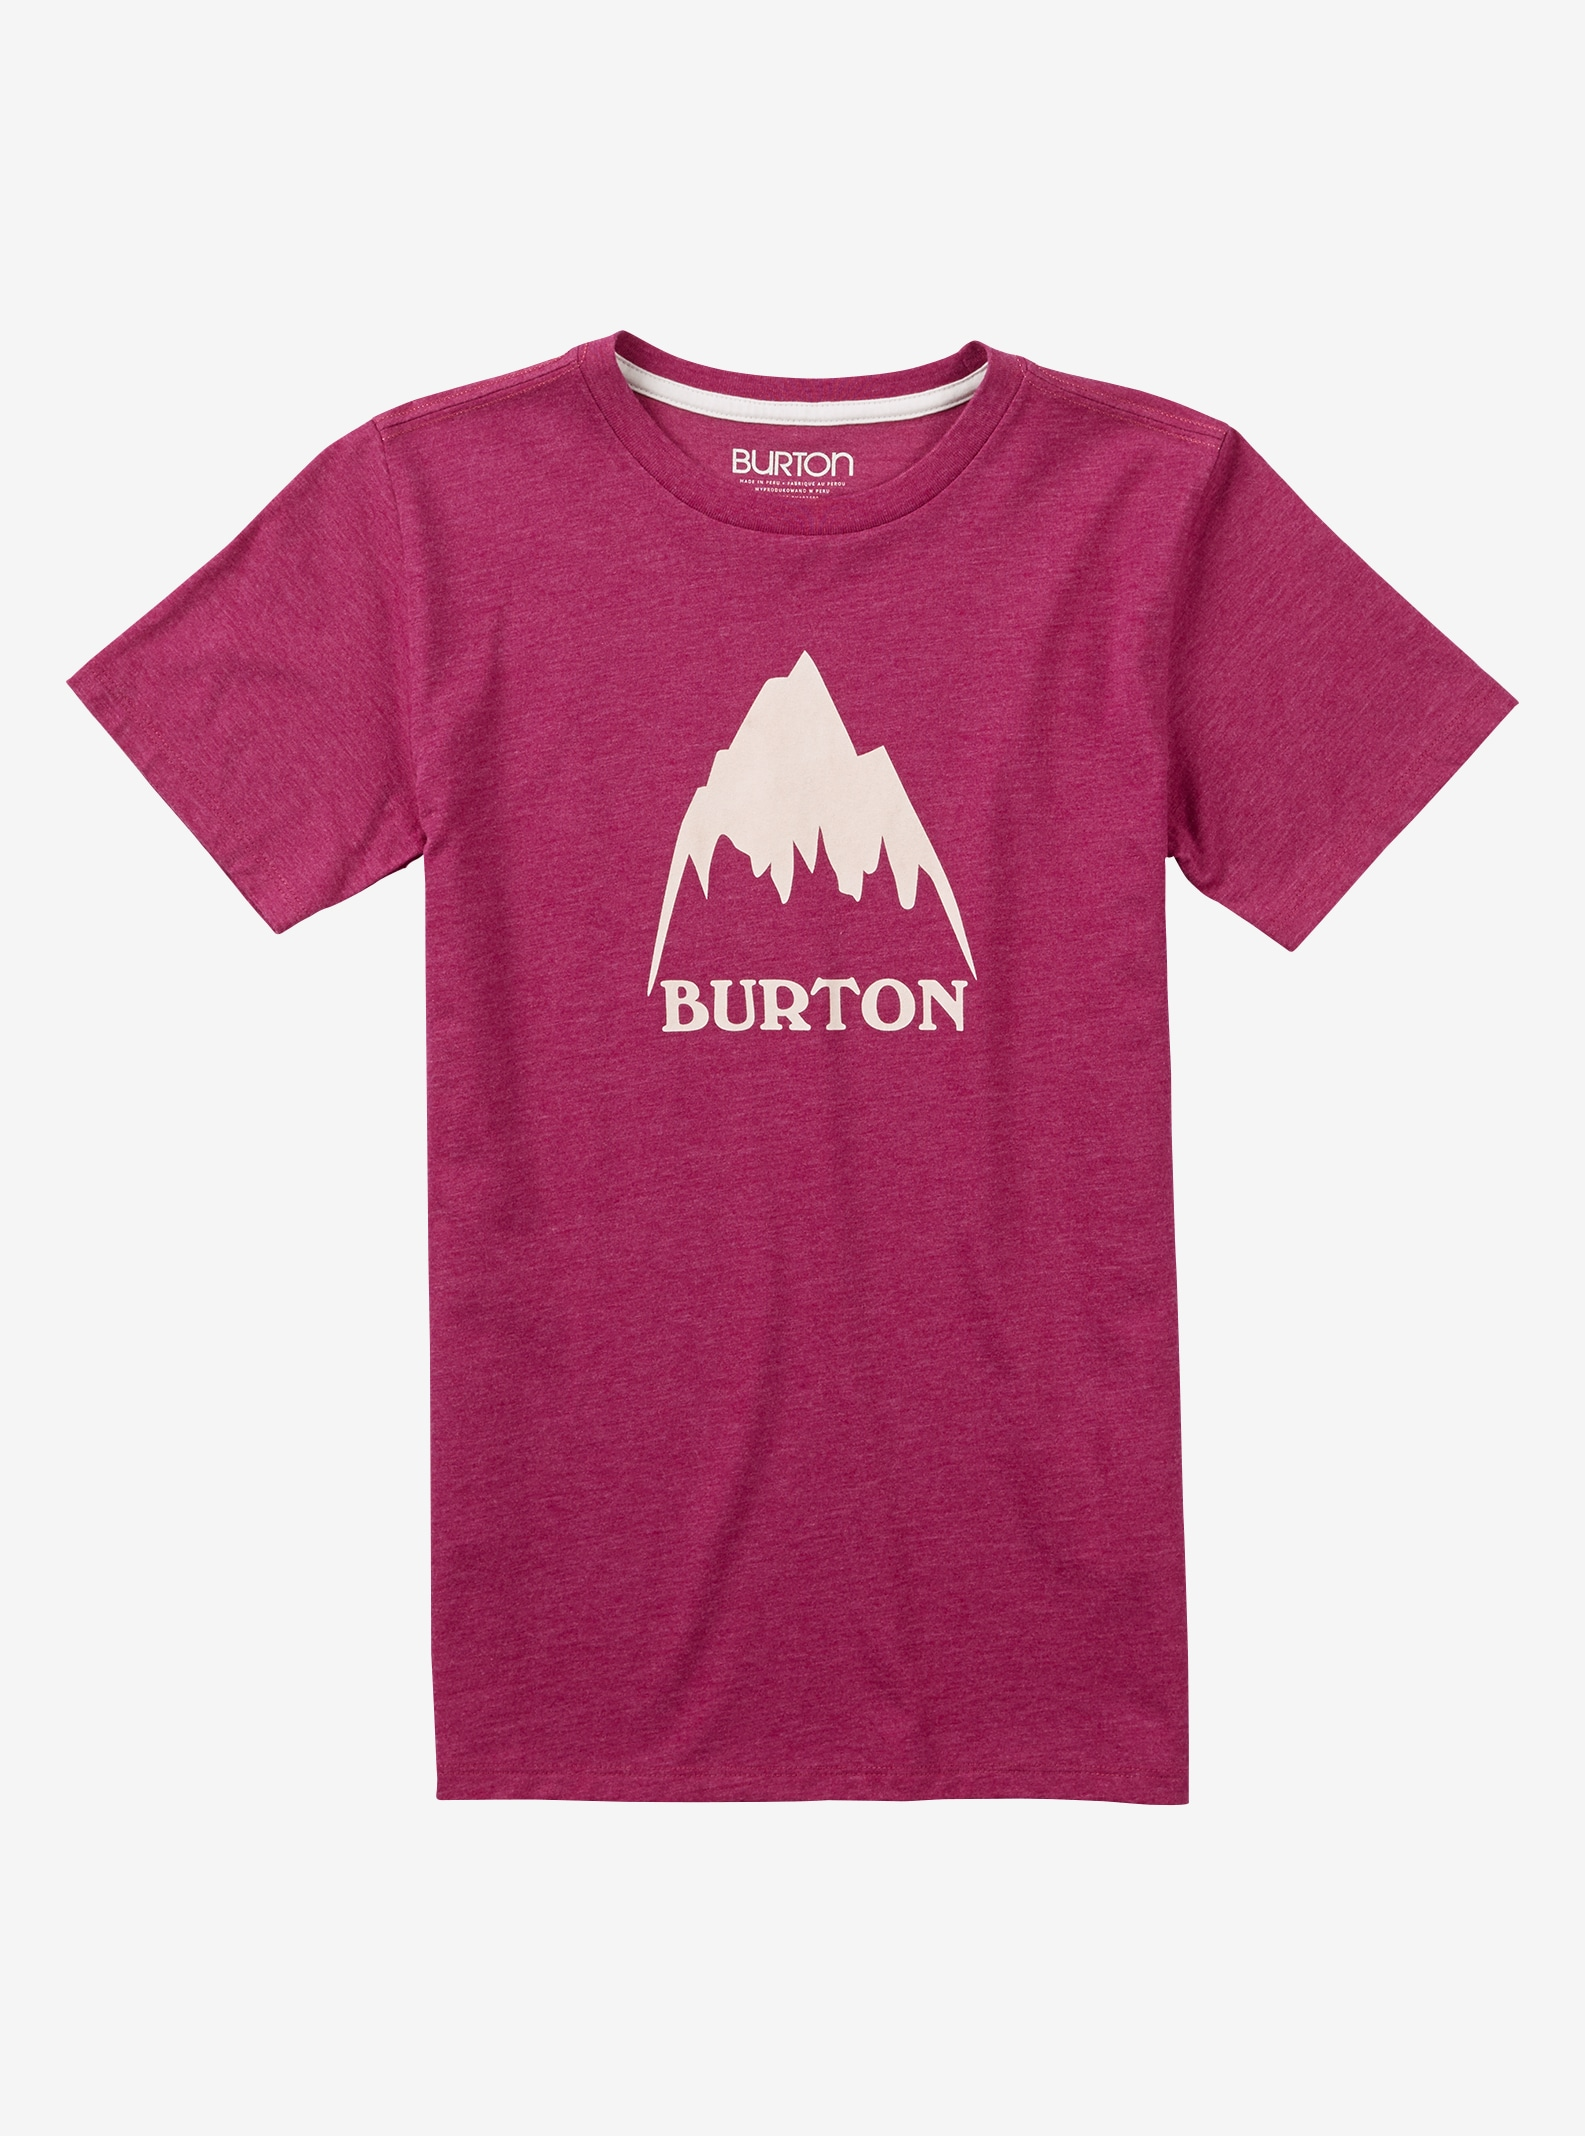 Girls' Burton Classic Mountain High Short Sleeve T Shirt shown in Anemone Heather